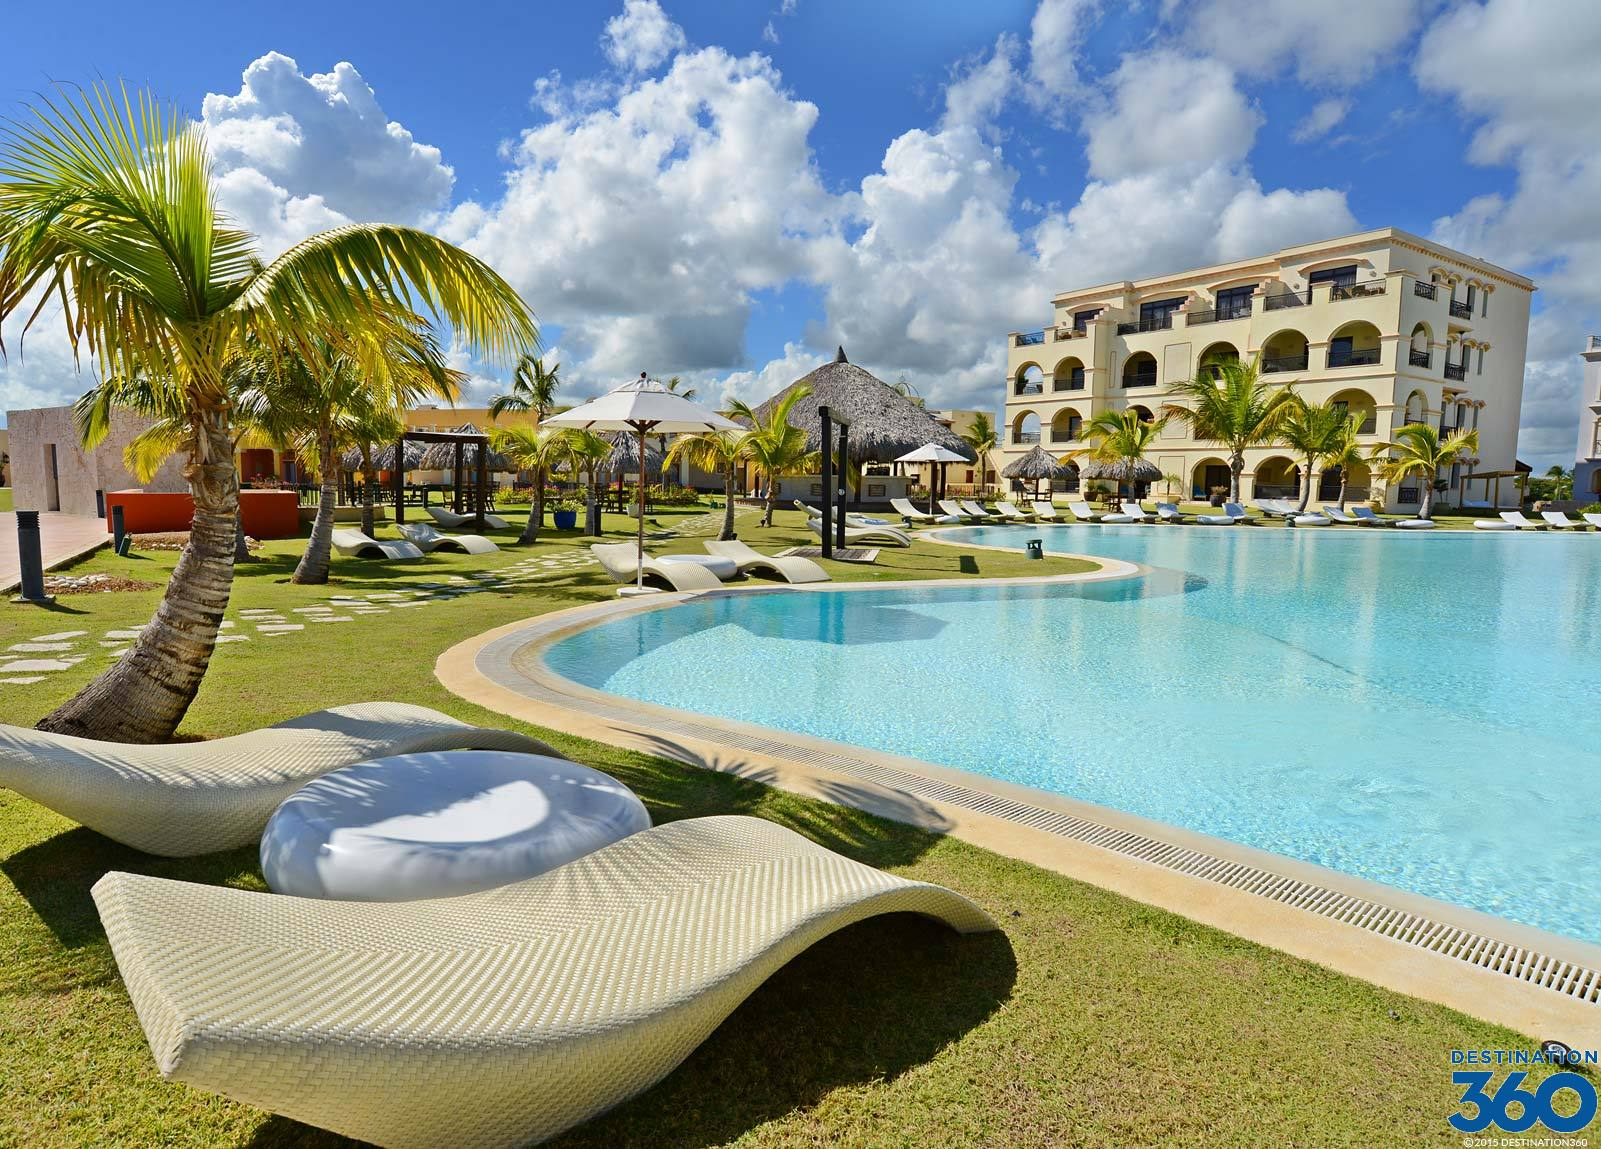 Hotels in Dominican Republic